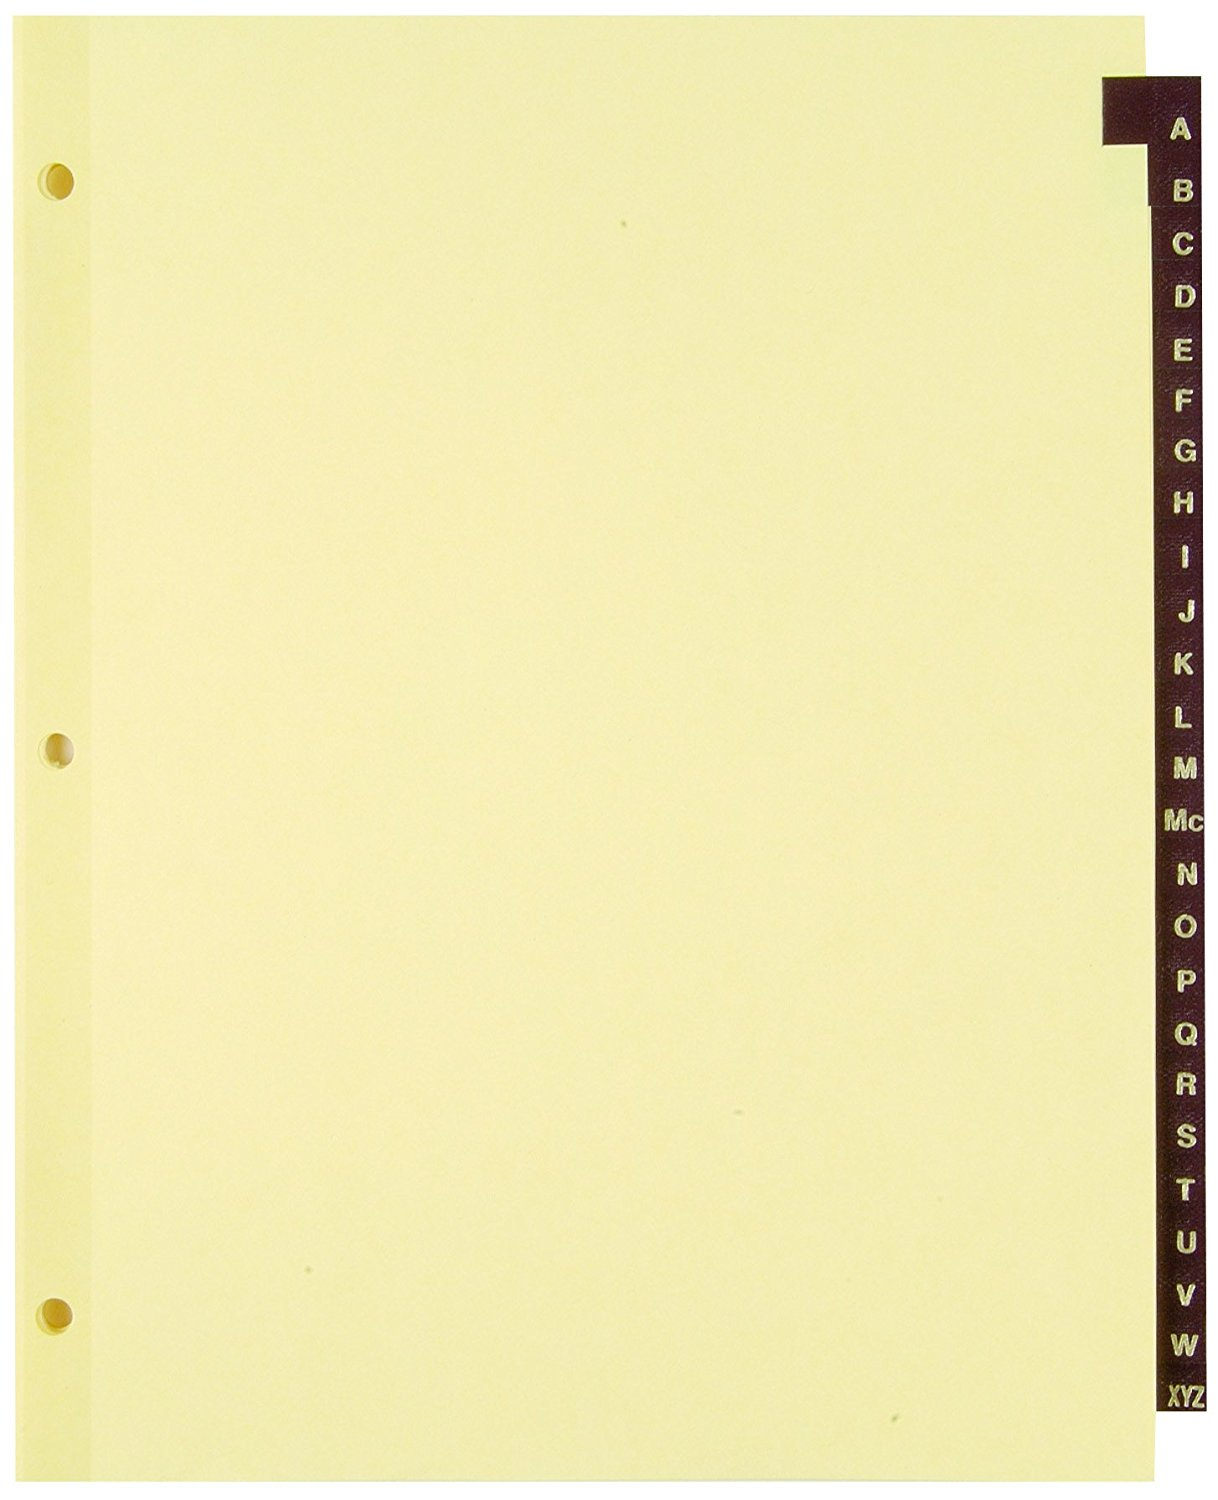 Staples Red Leather Alphabetical Tab Dividers, A-Z (13498)